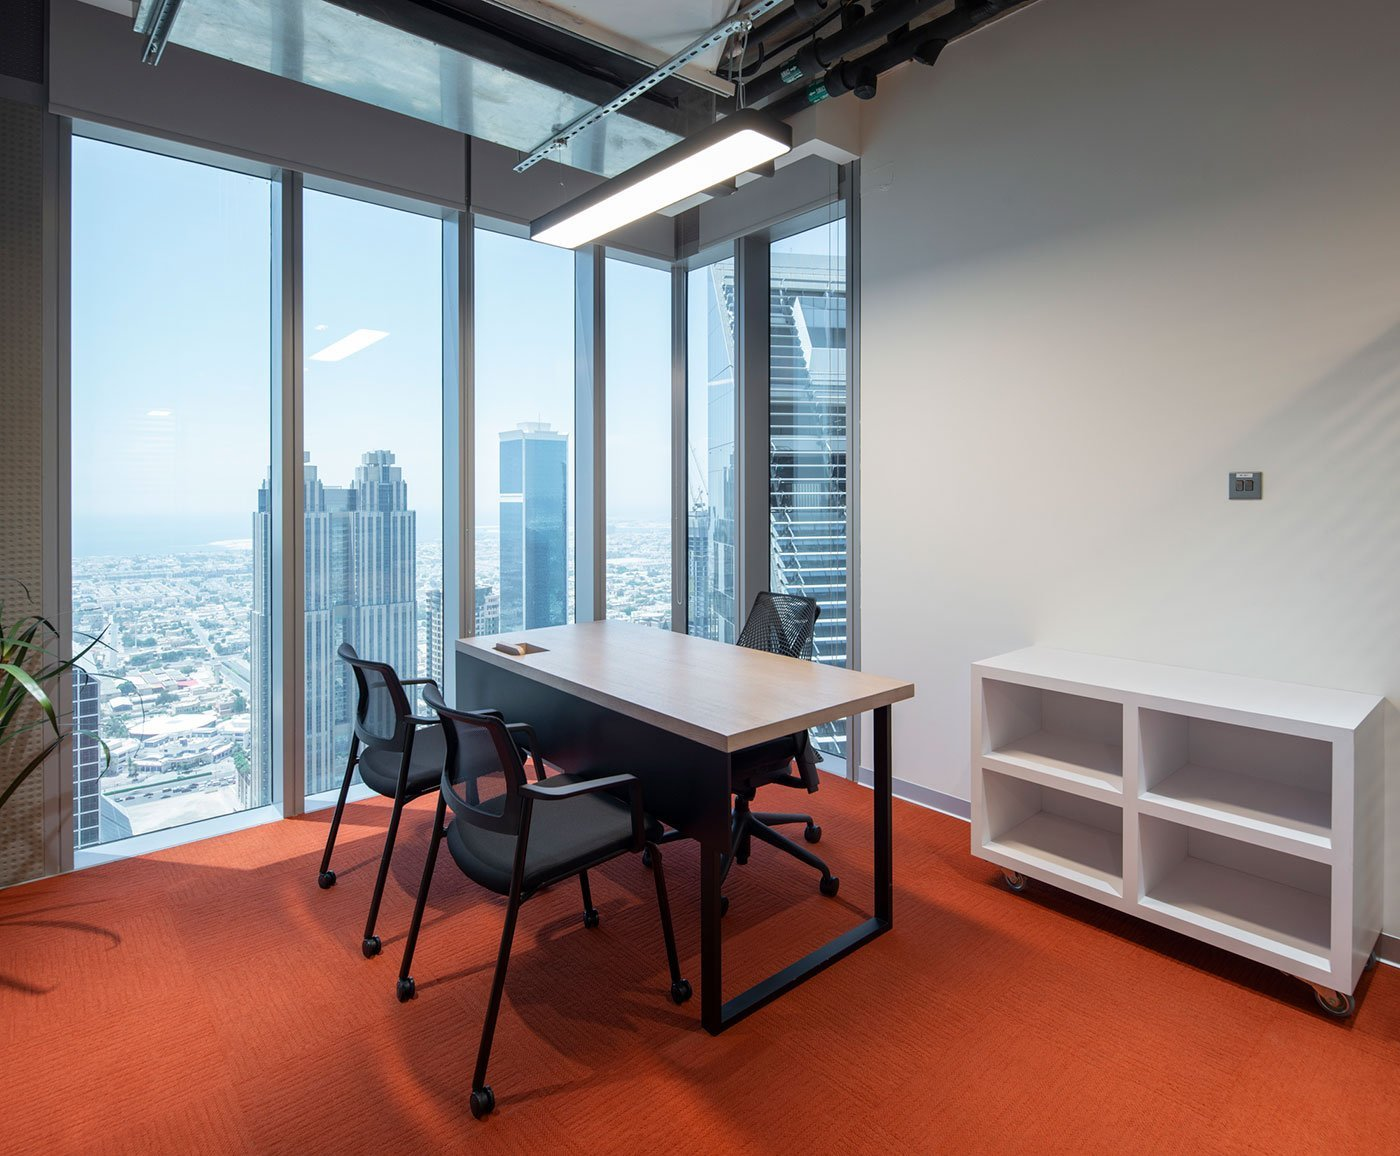 workstation at an office in central park towers dubai